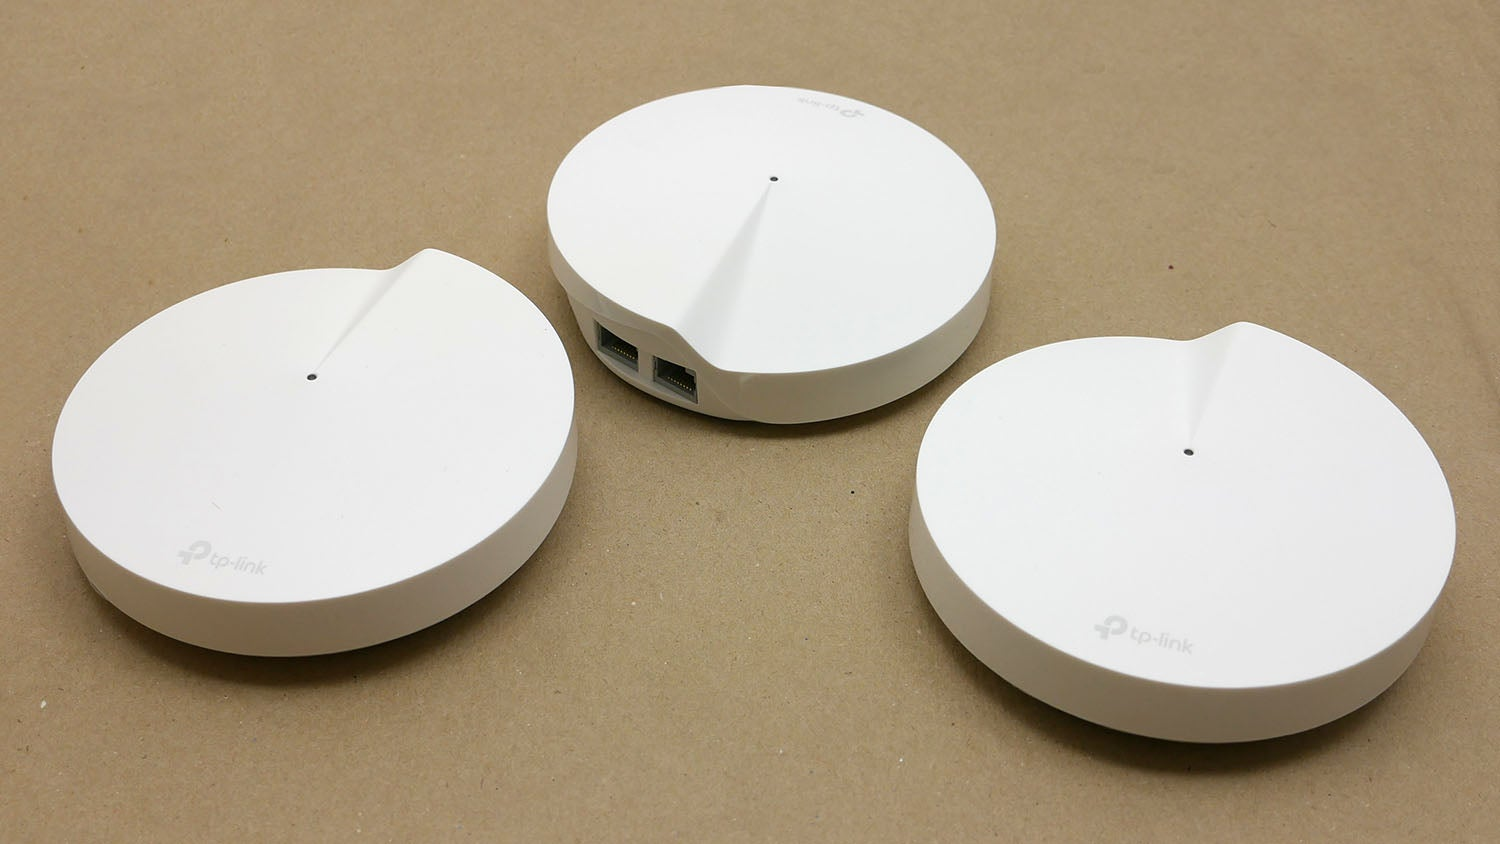 TP-Link Deco review: Mesh Wi-Fi for £230 | Trusted Reviews